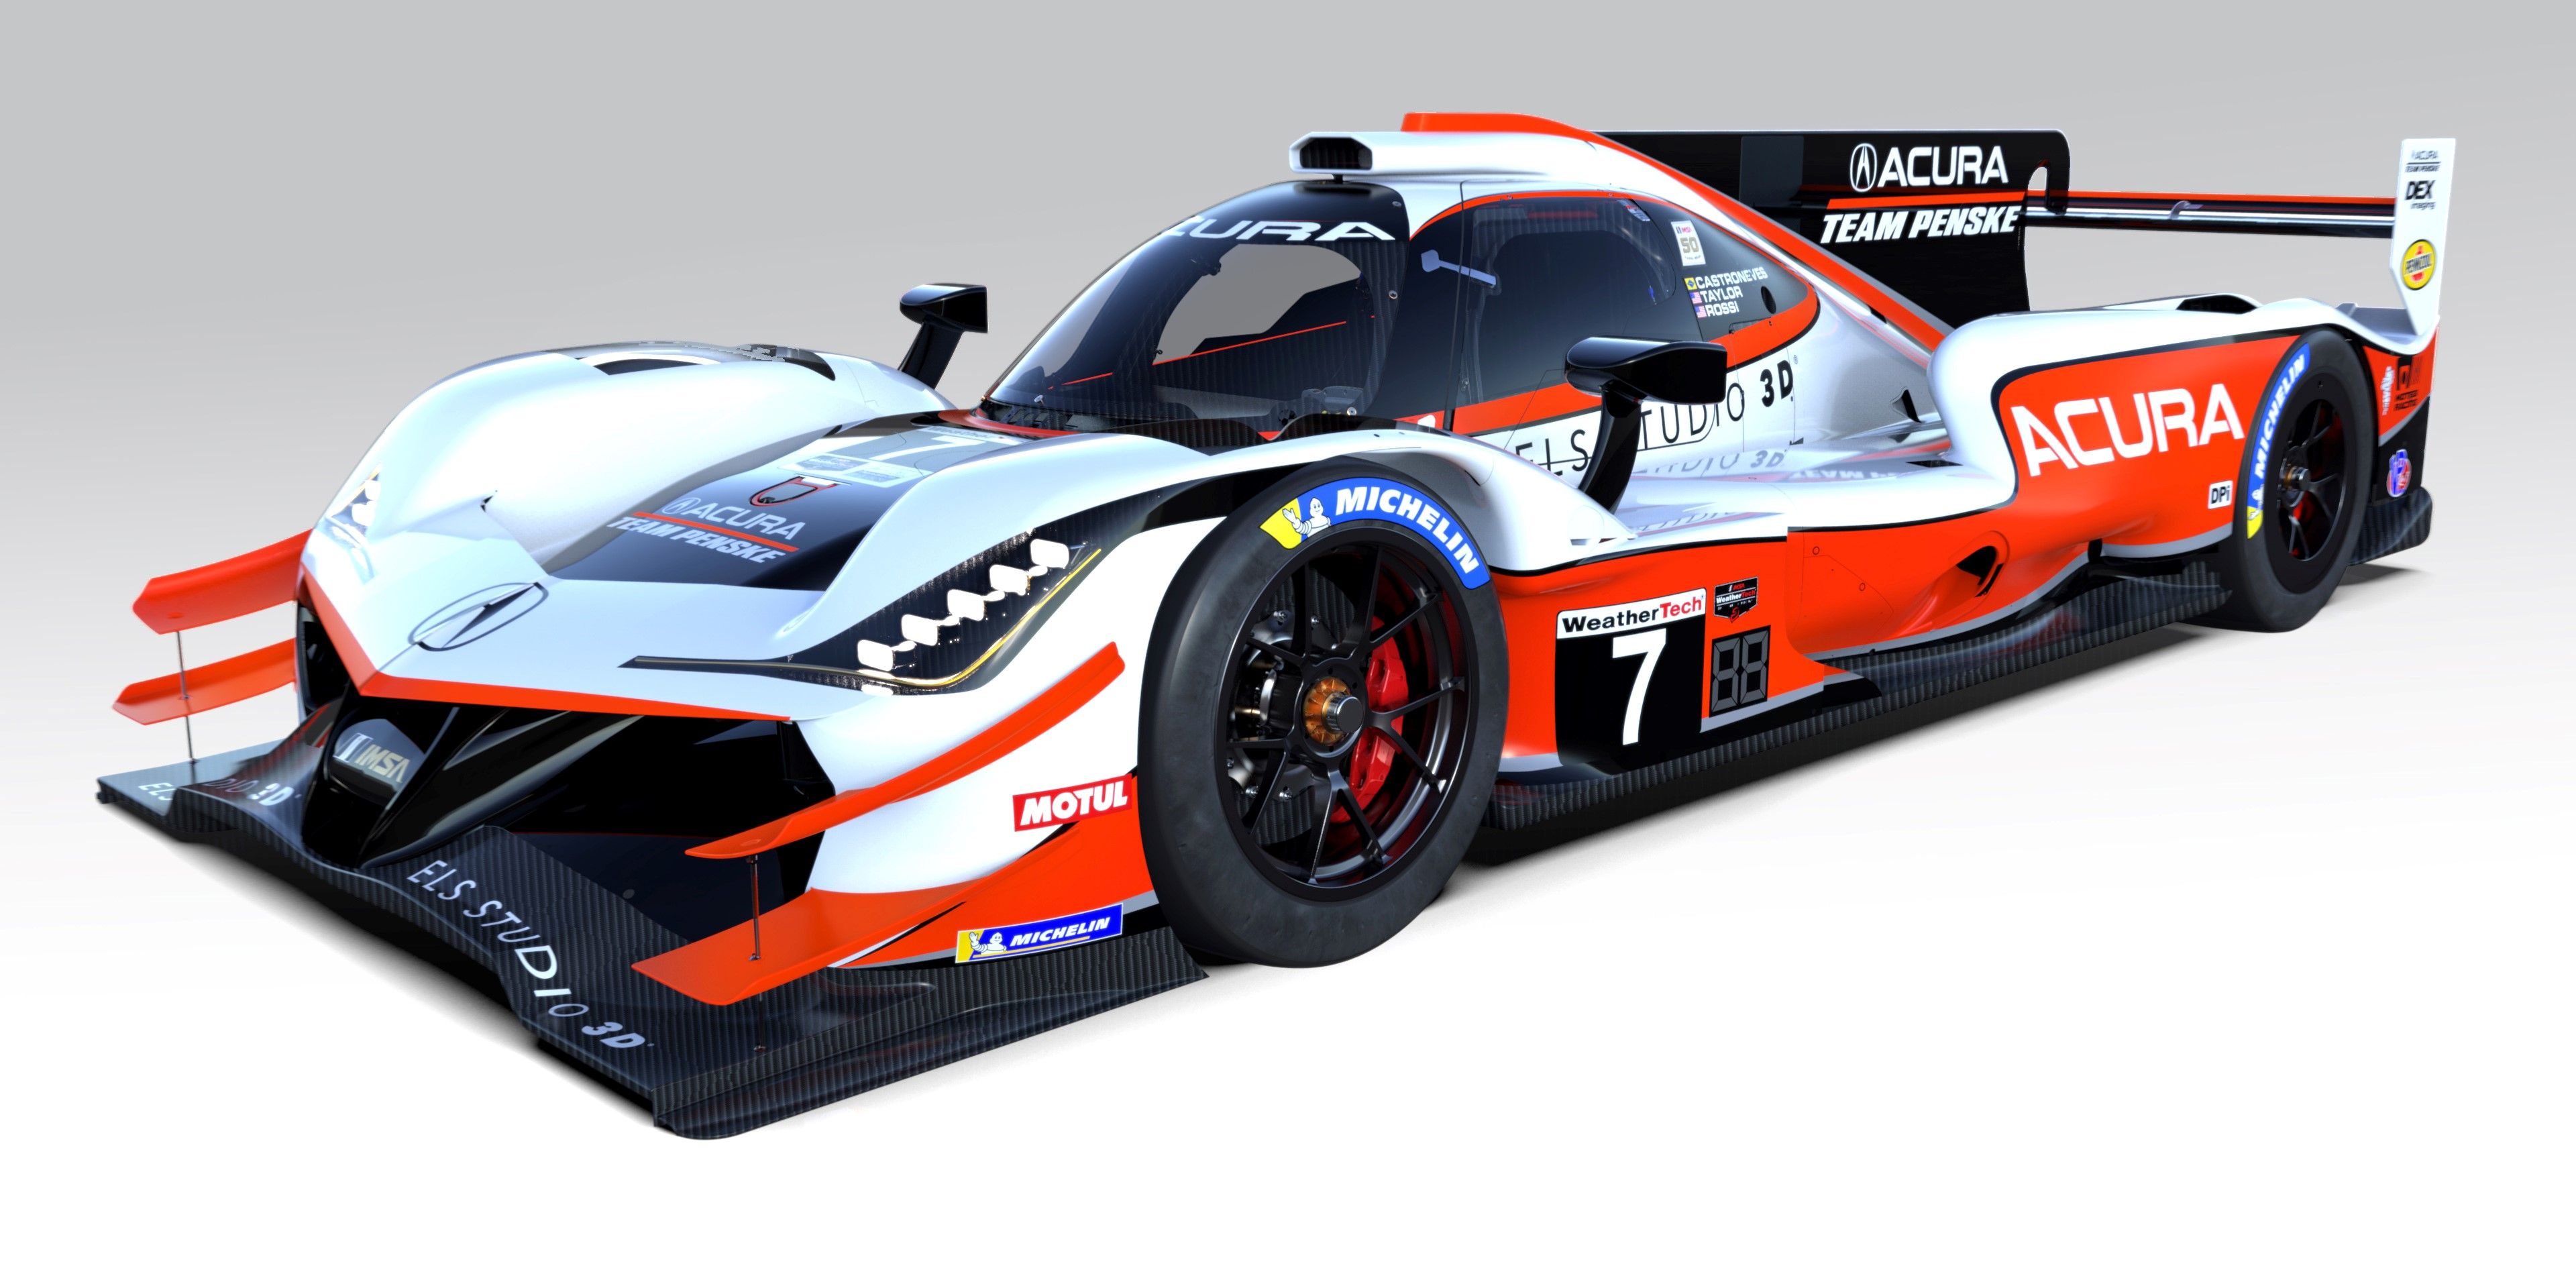 2019 Acura Team Penske No. 7 ARX-05 Prototype